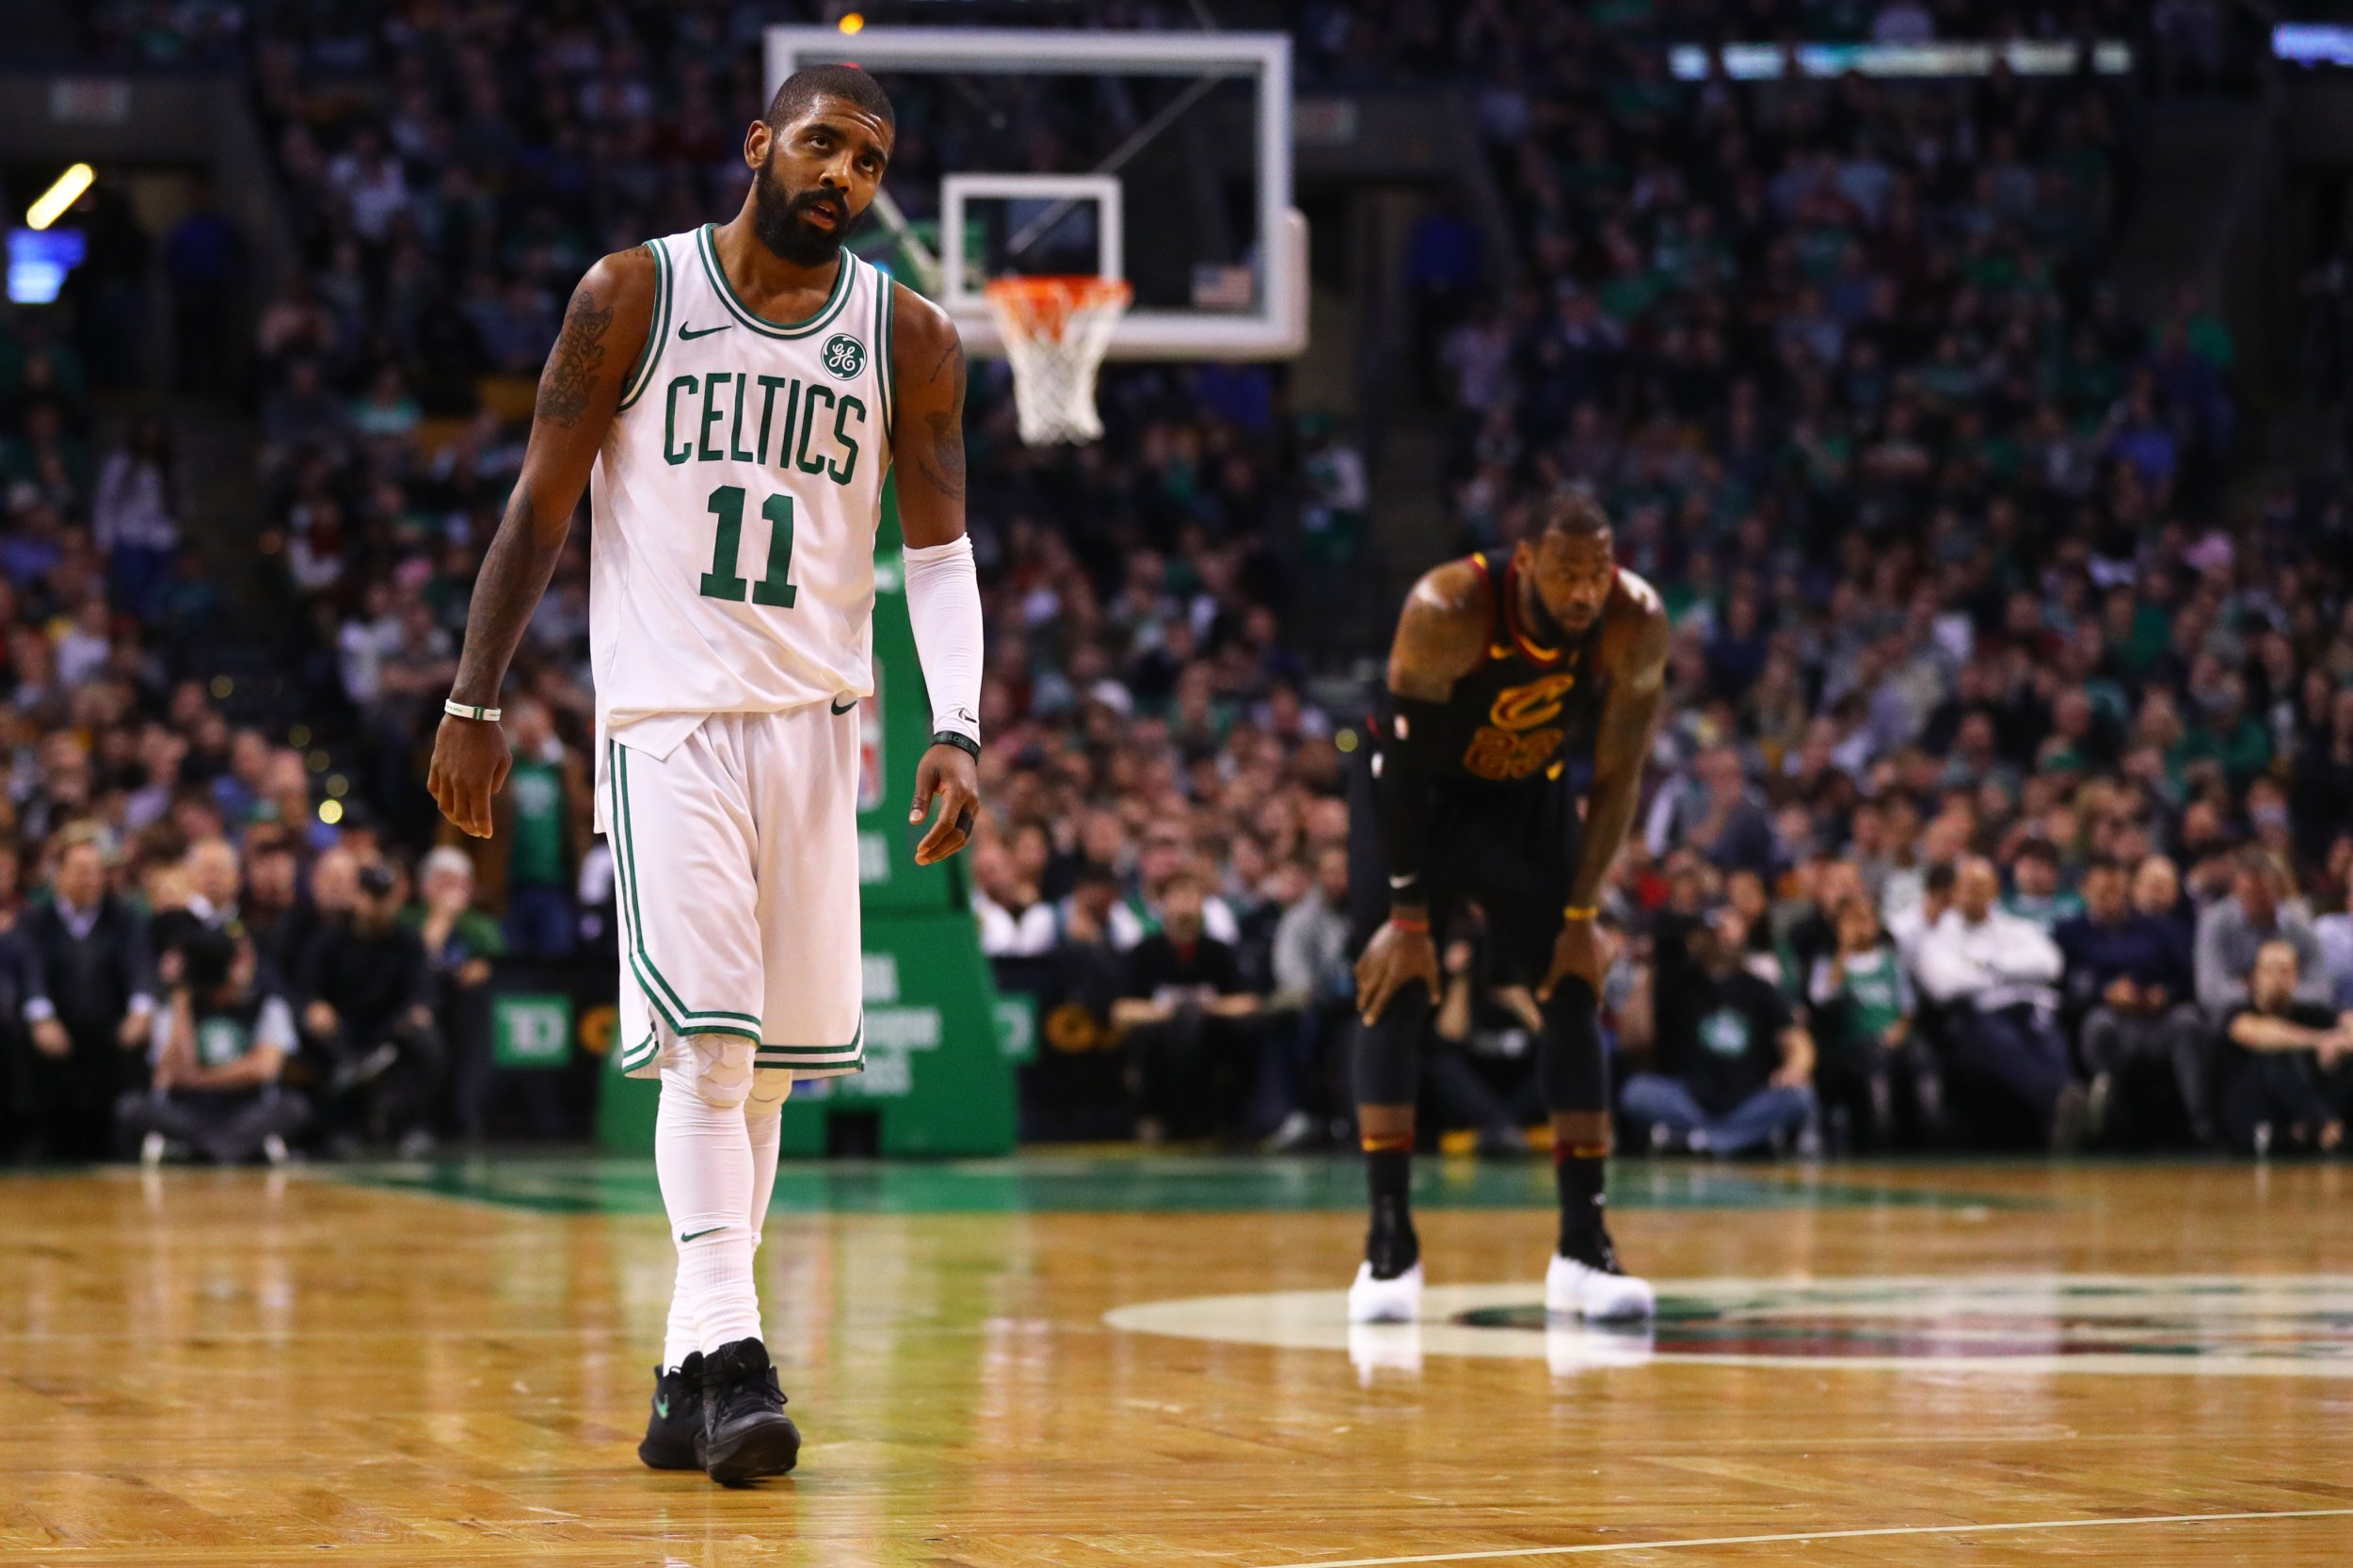 Cleveland Basketball Team >> LeBron James Won't Resign with Cavaliers and Kyrie Irving ...